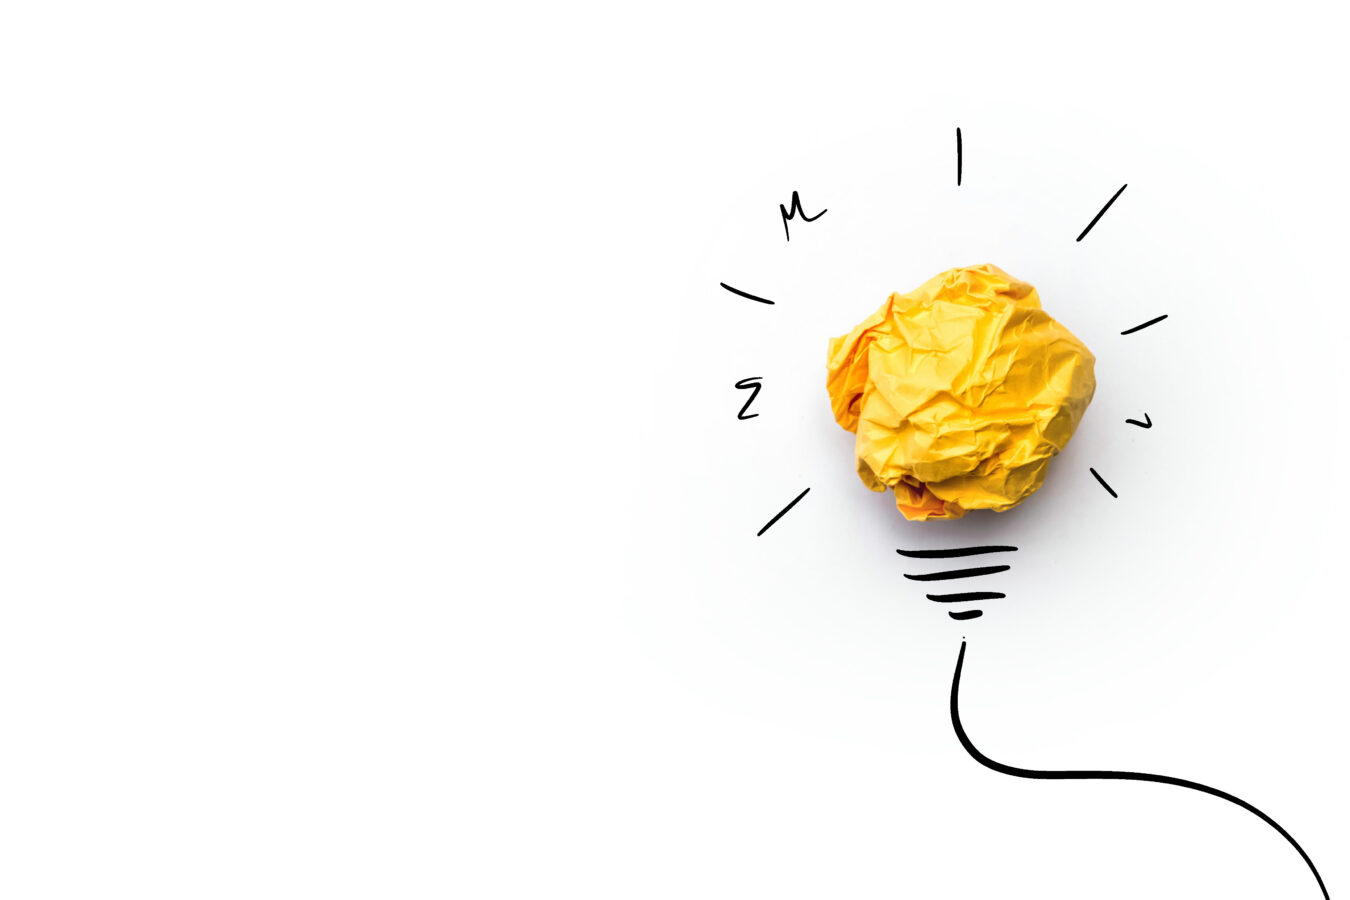 an image of a yellow bulb demonstrating rapid innovation